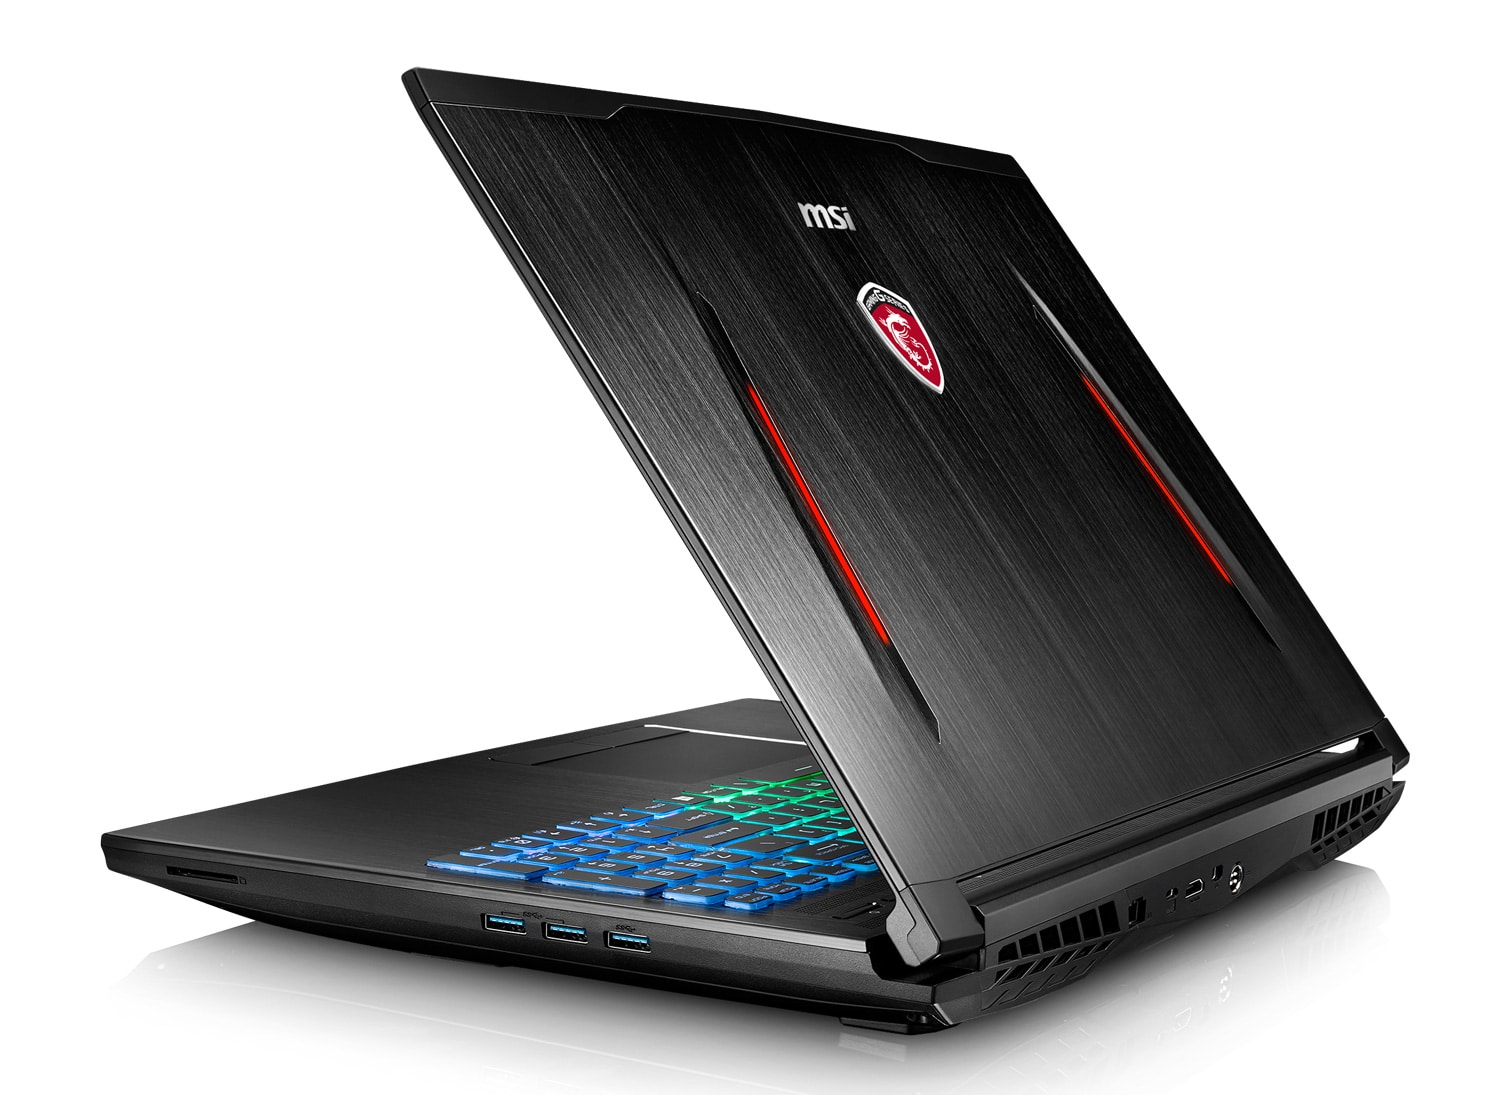 MSI GT62VR 6RD-097, PC portable 15 pouces IPS GTX 1070 SSD promo 1699€